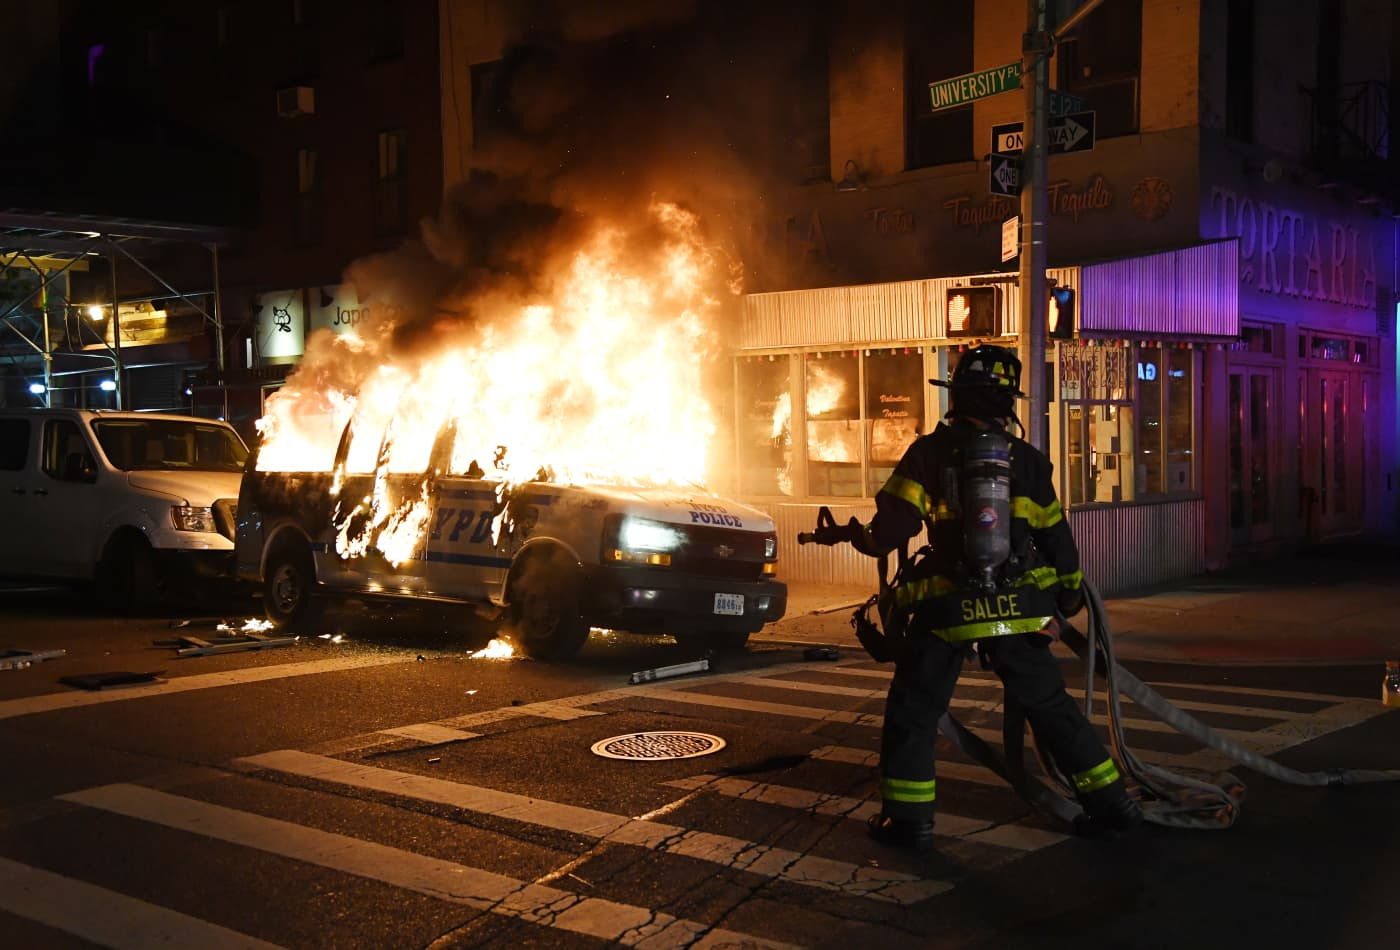 Live updates: Cities impose curfews, National Guard mobilizes as U.S. faces another night of unrest after George Floyd killing